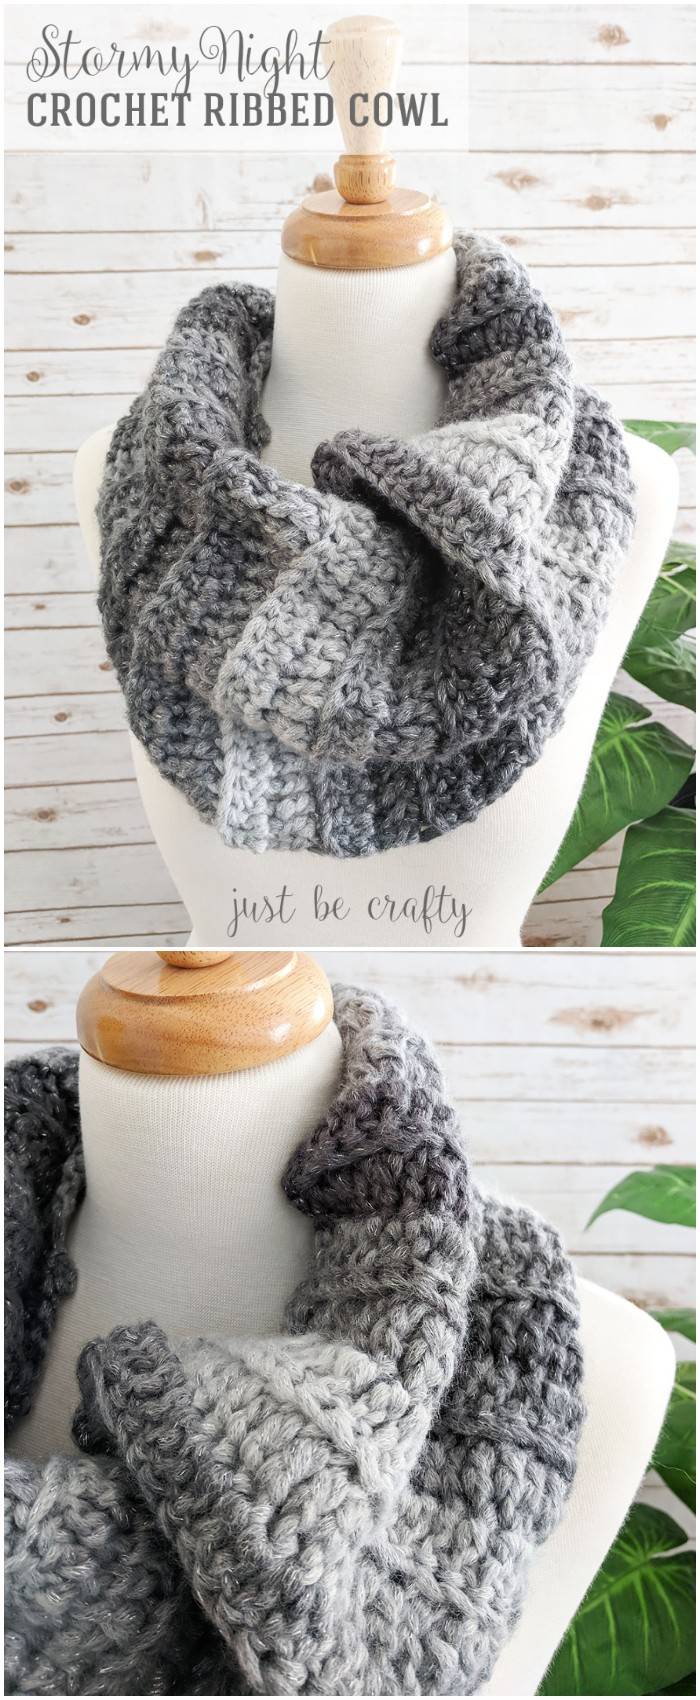 Crochet Ribbed Cowl Pattern